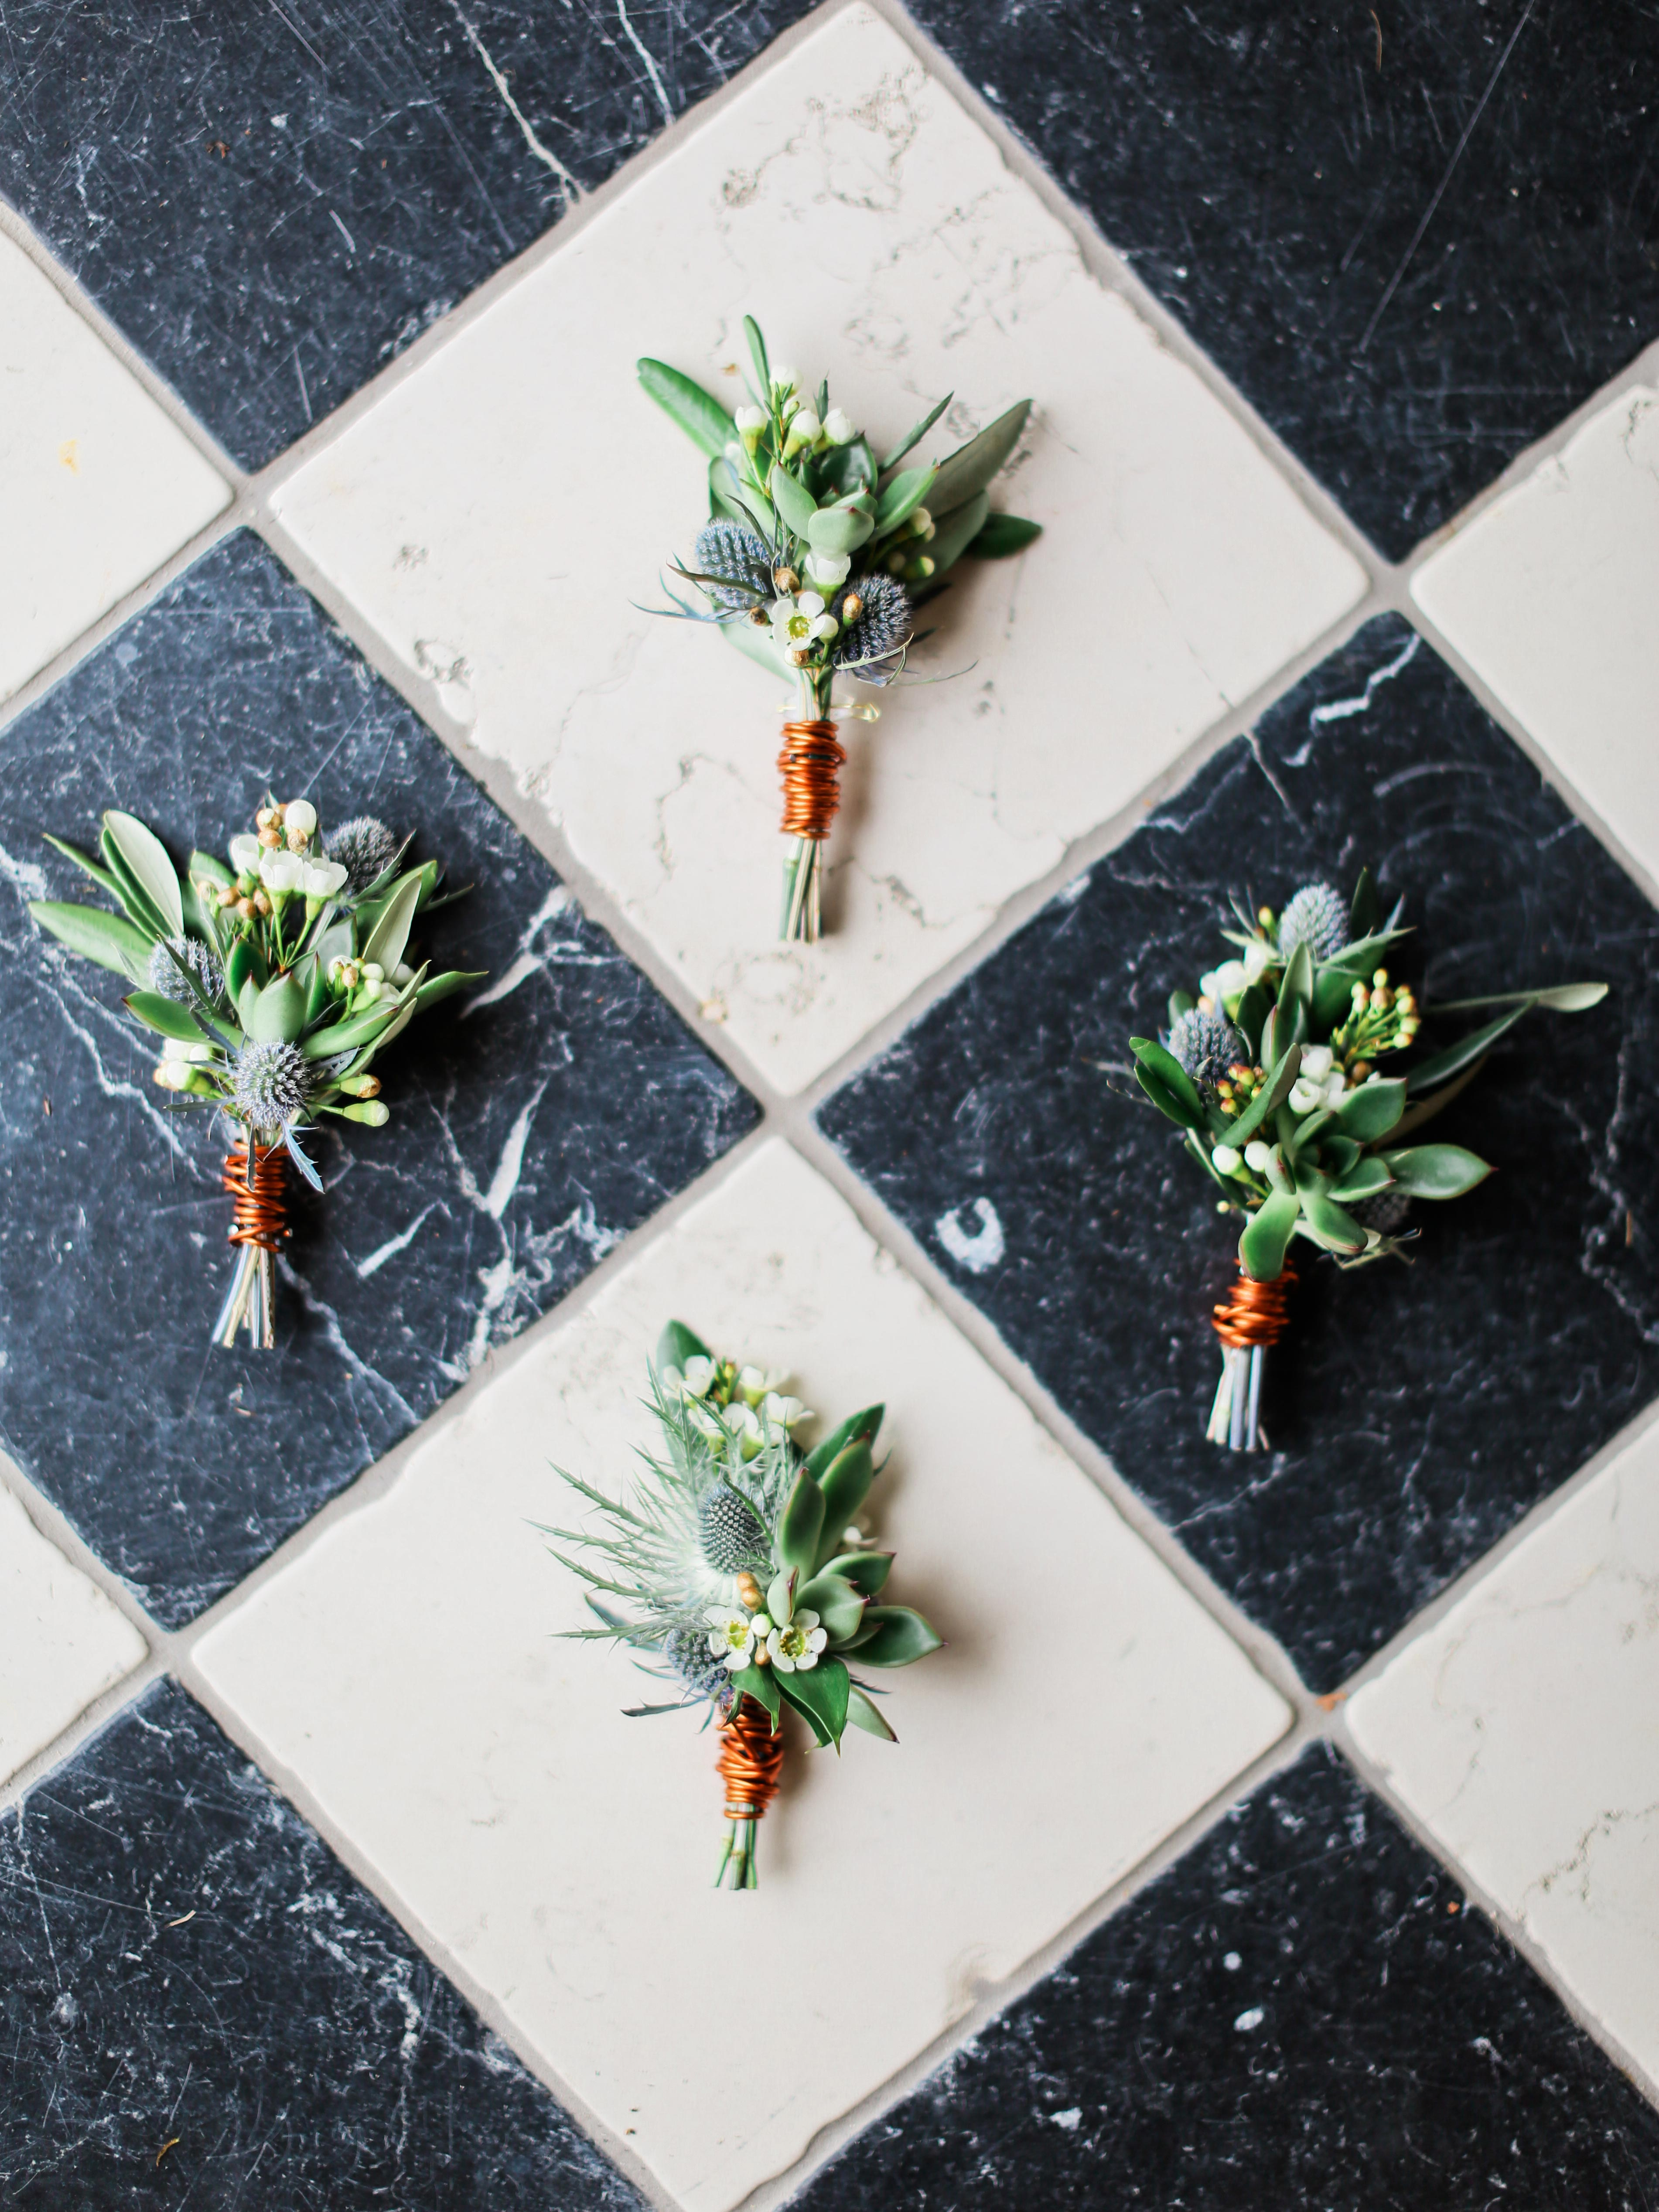 boutonnieres on tile